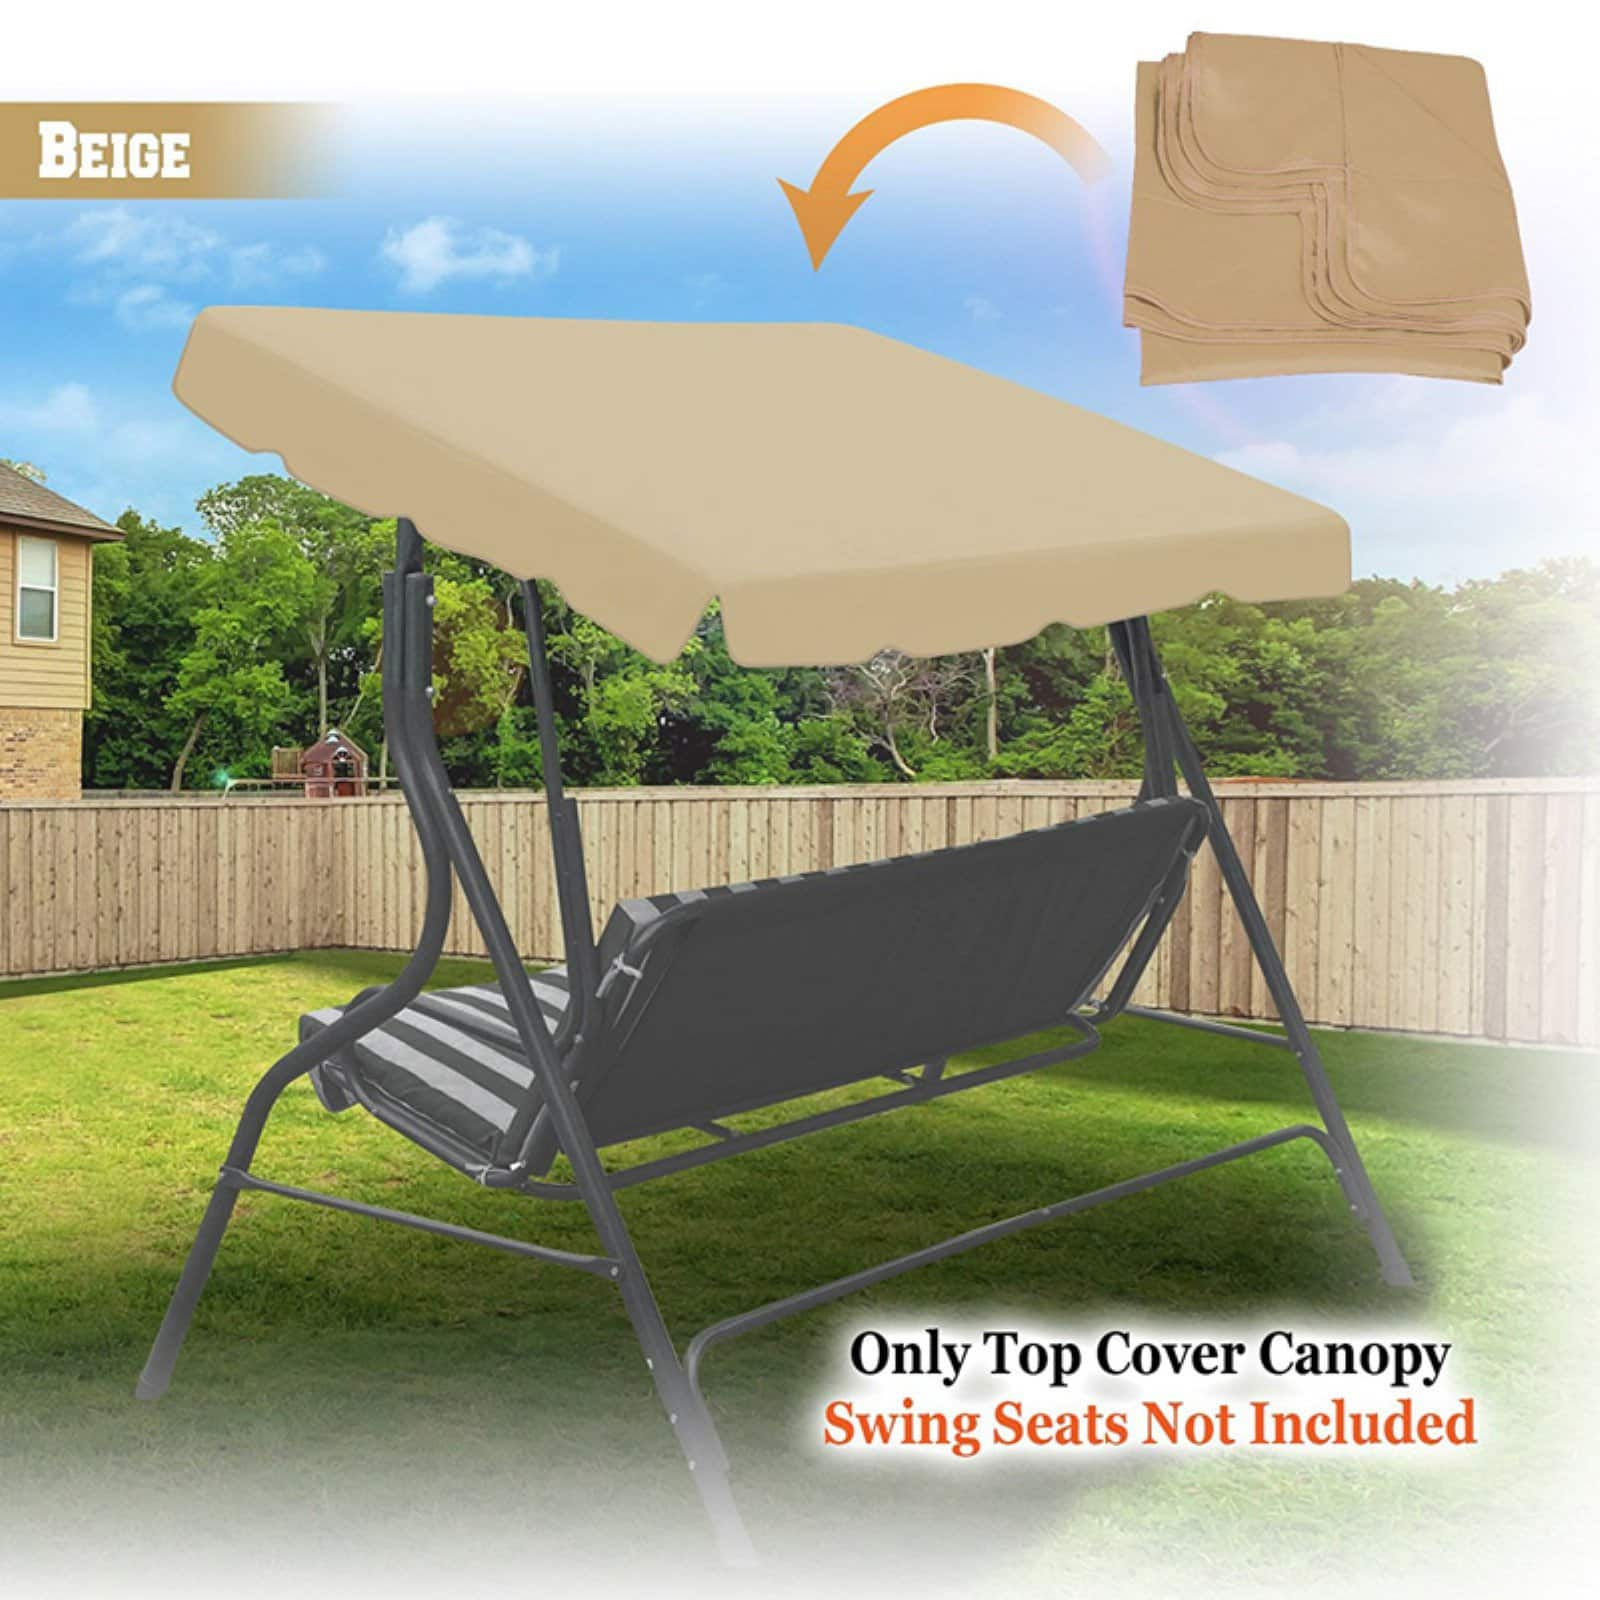 Outdoor Patio Swing Canopy Replacement